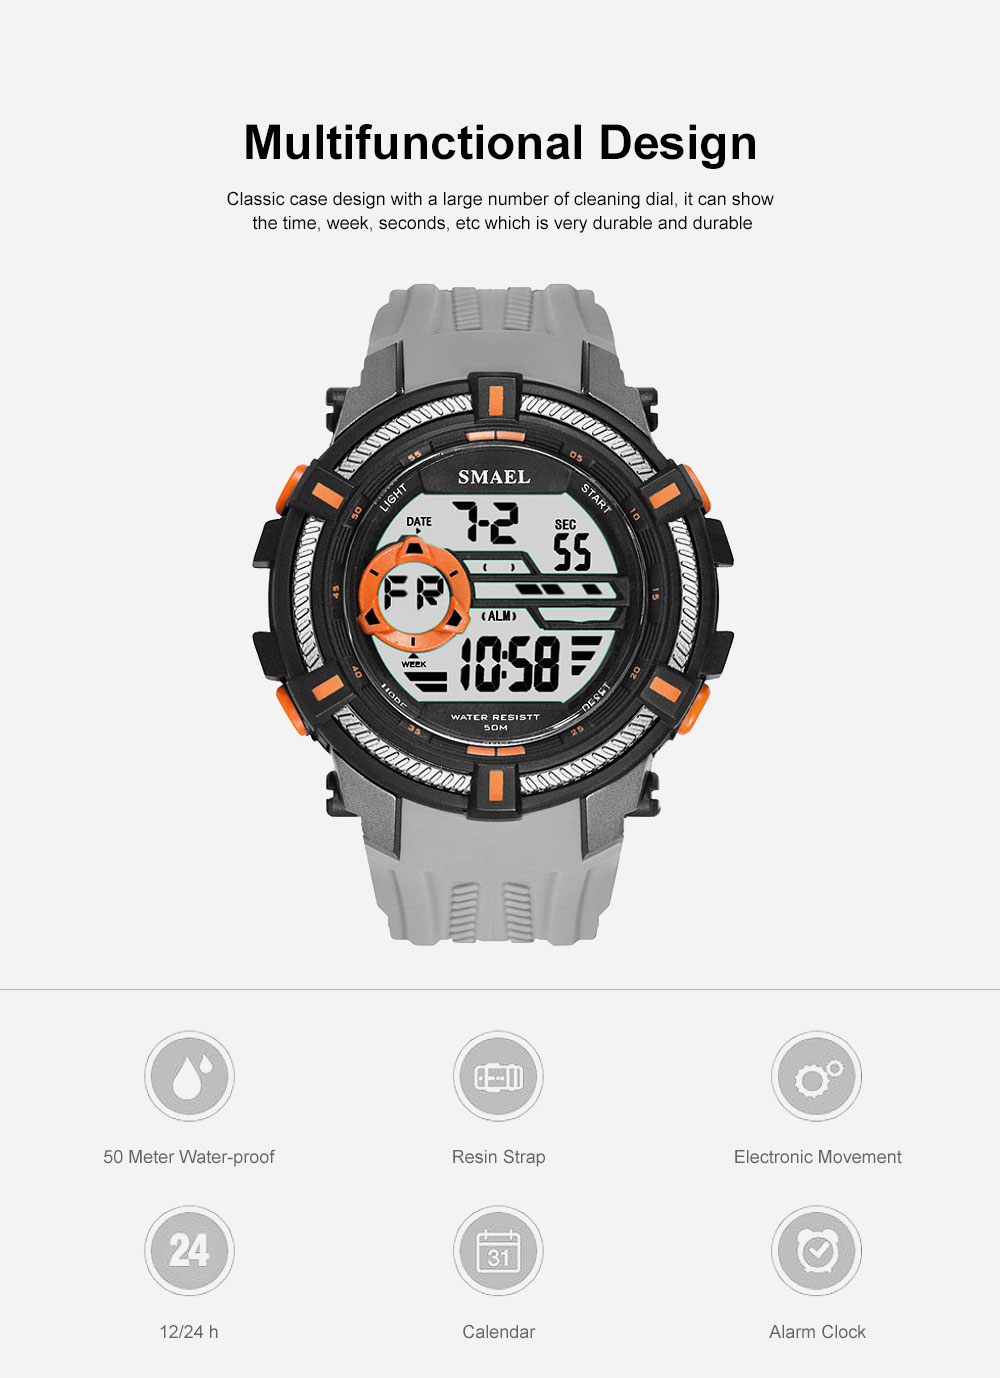 Multifunction Smart Electronic Watch, Luminous Mode, Water-proof, with Resin Strap 5